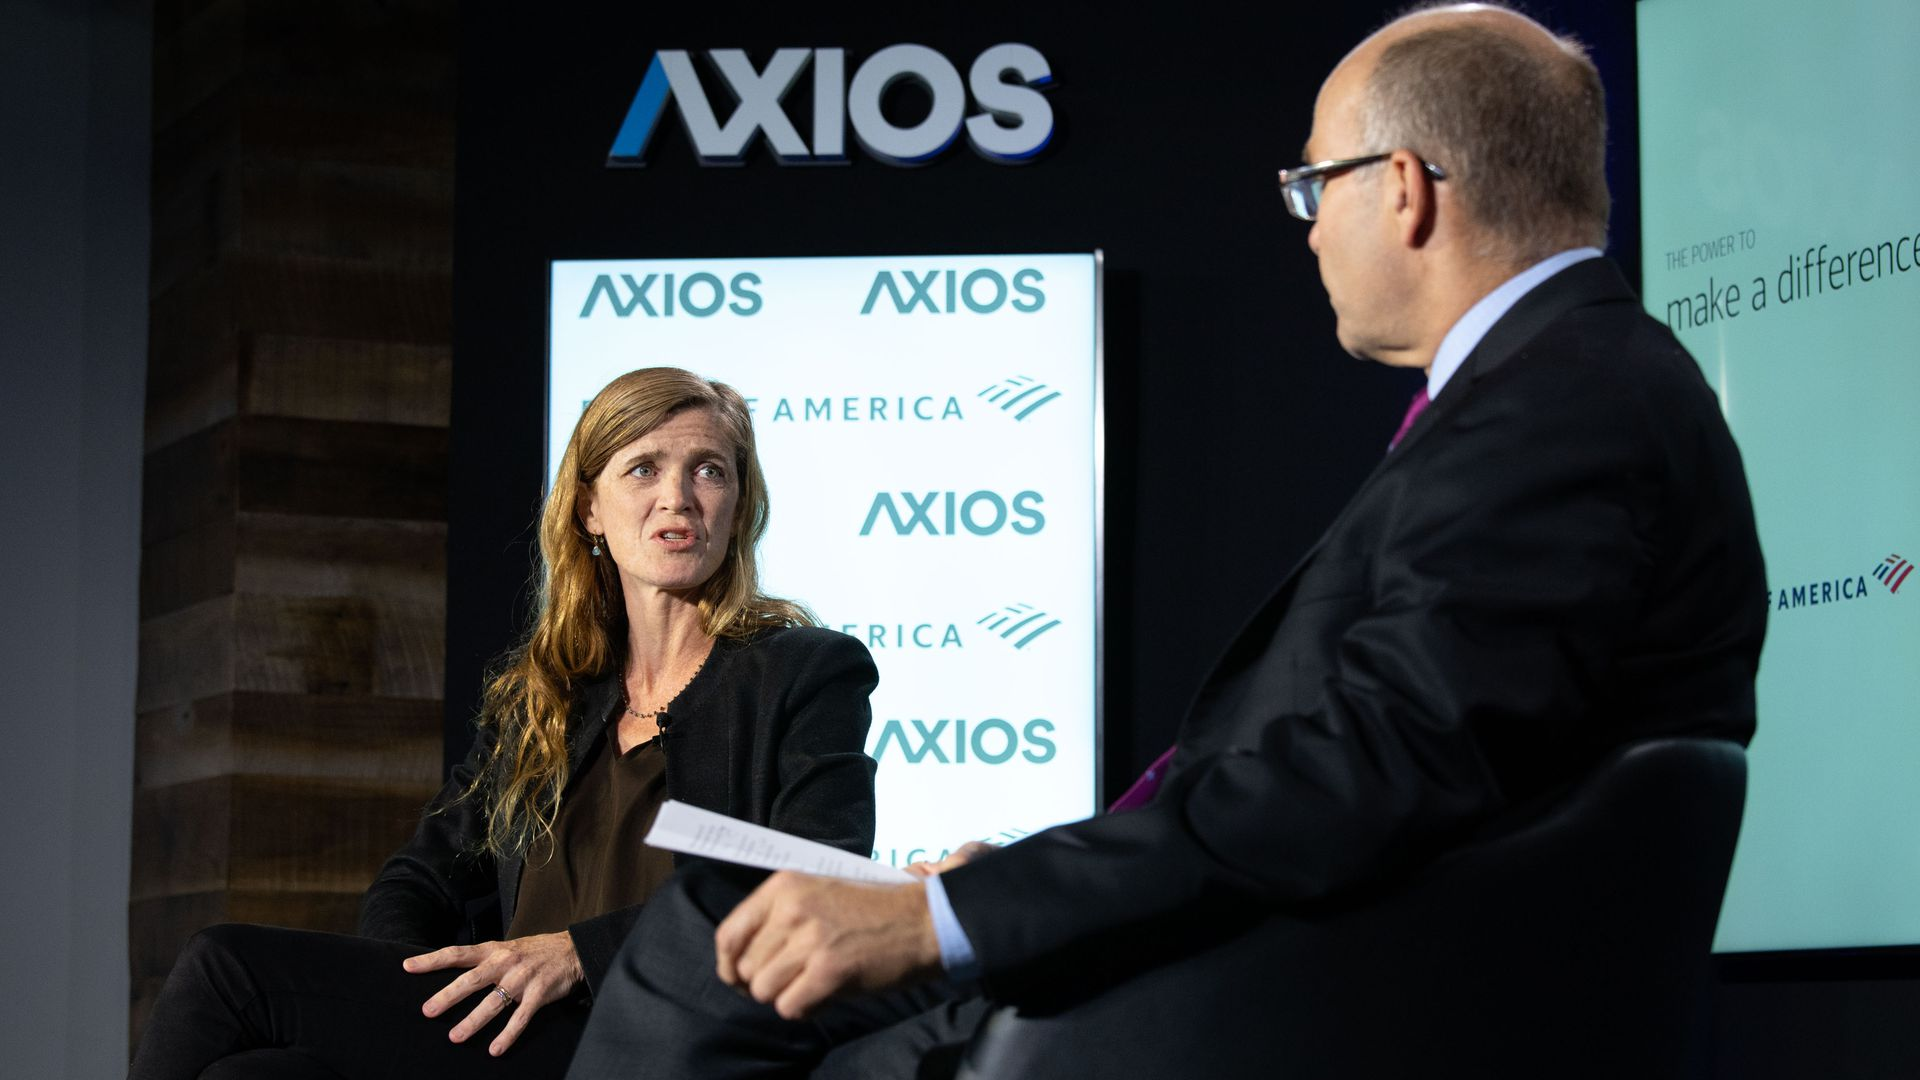 Left, Samantha Power on the Axios stage, with Mike Allen, right.